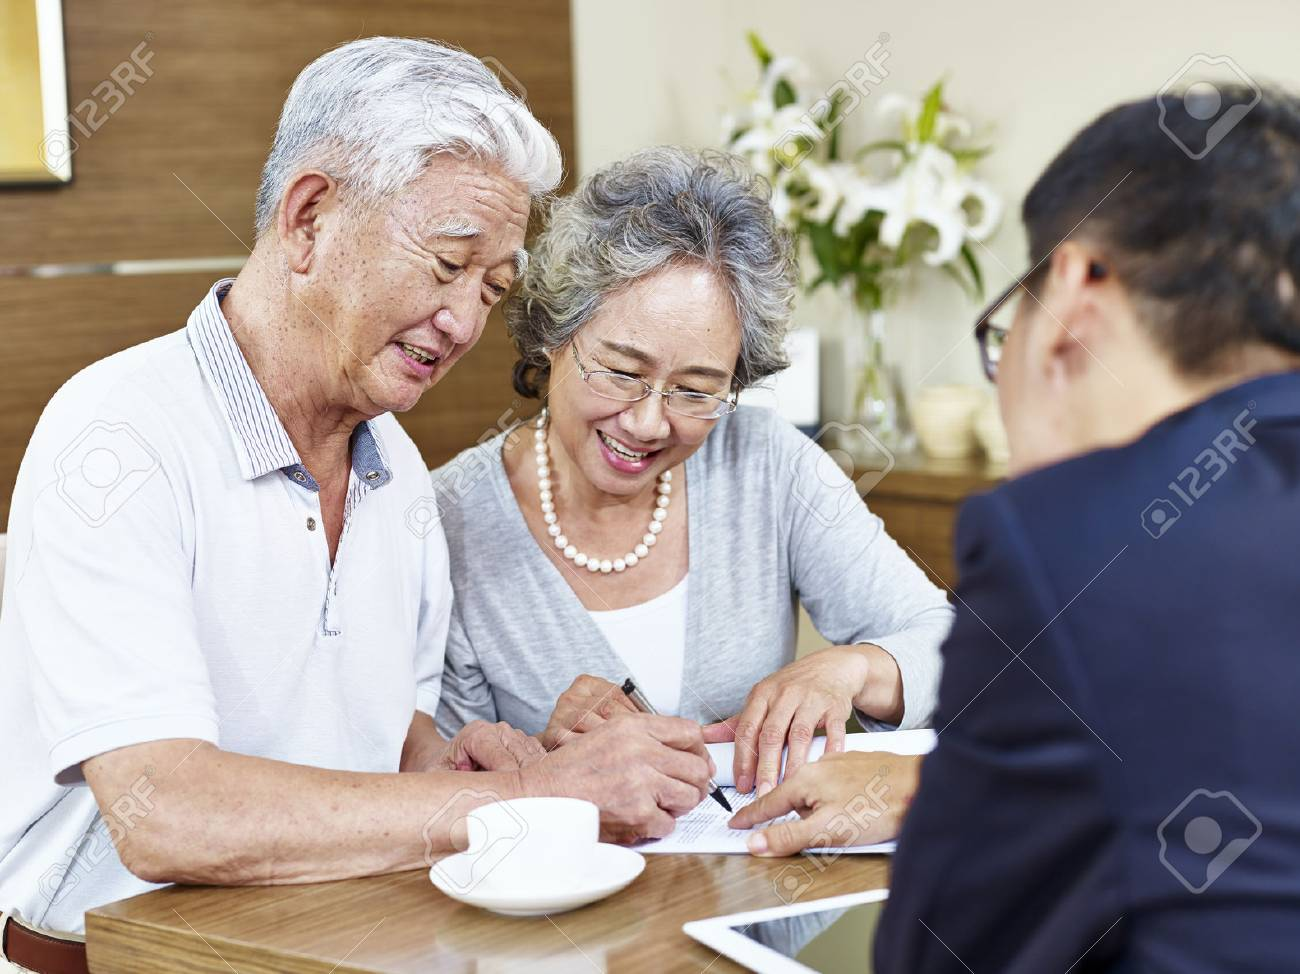 happy senior asian couple signing a contract agreement in front a salesperson. - 67953987